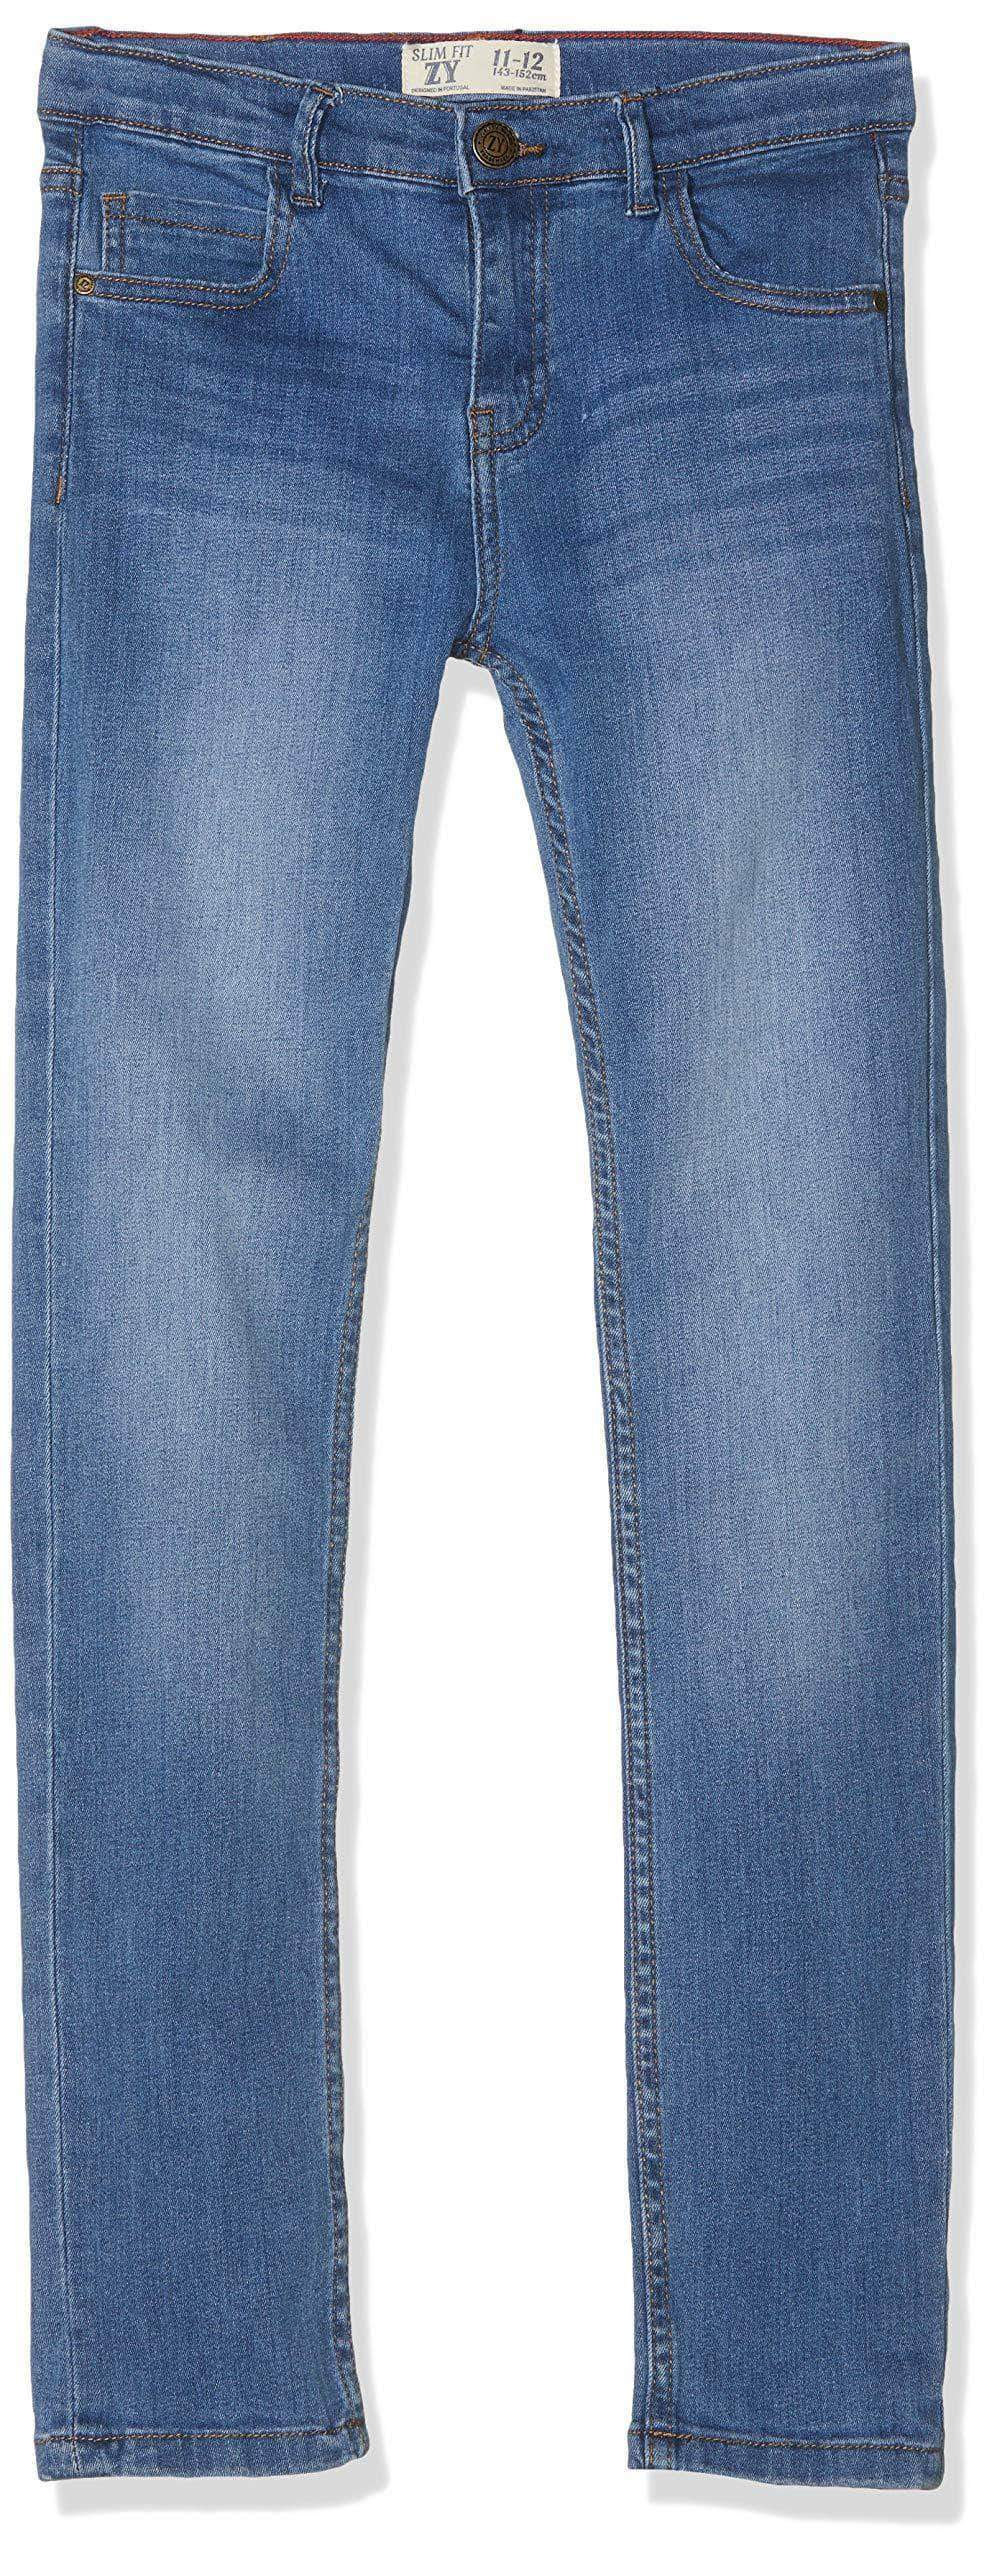 Amazon ZIPPY Pantalones Vaqueros, Azul (Light Blue Denim 2564), 12 años (Tamaño del Fabricante: 11/12) para Niños